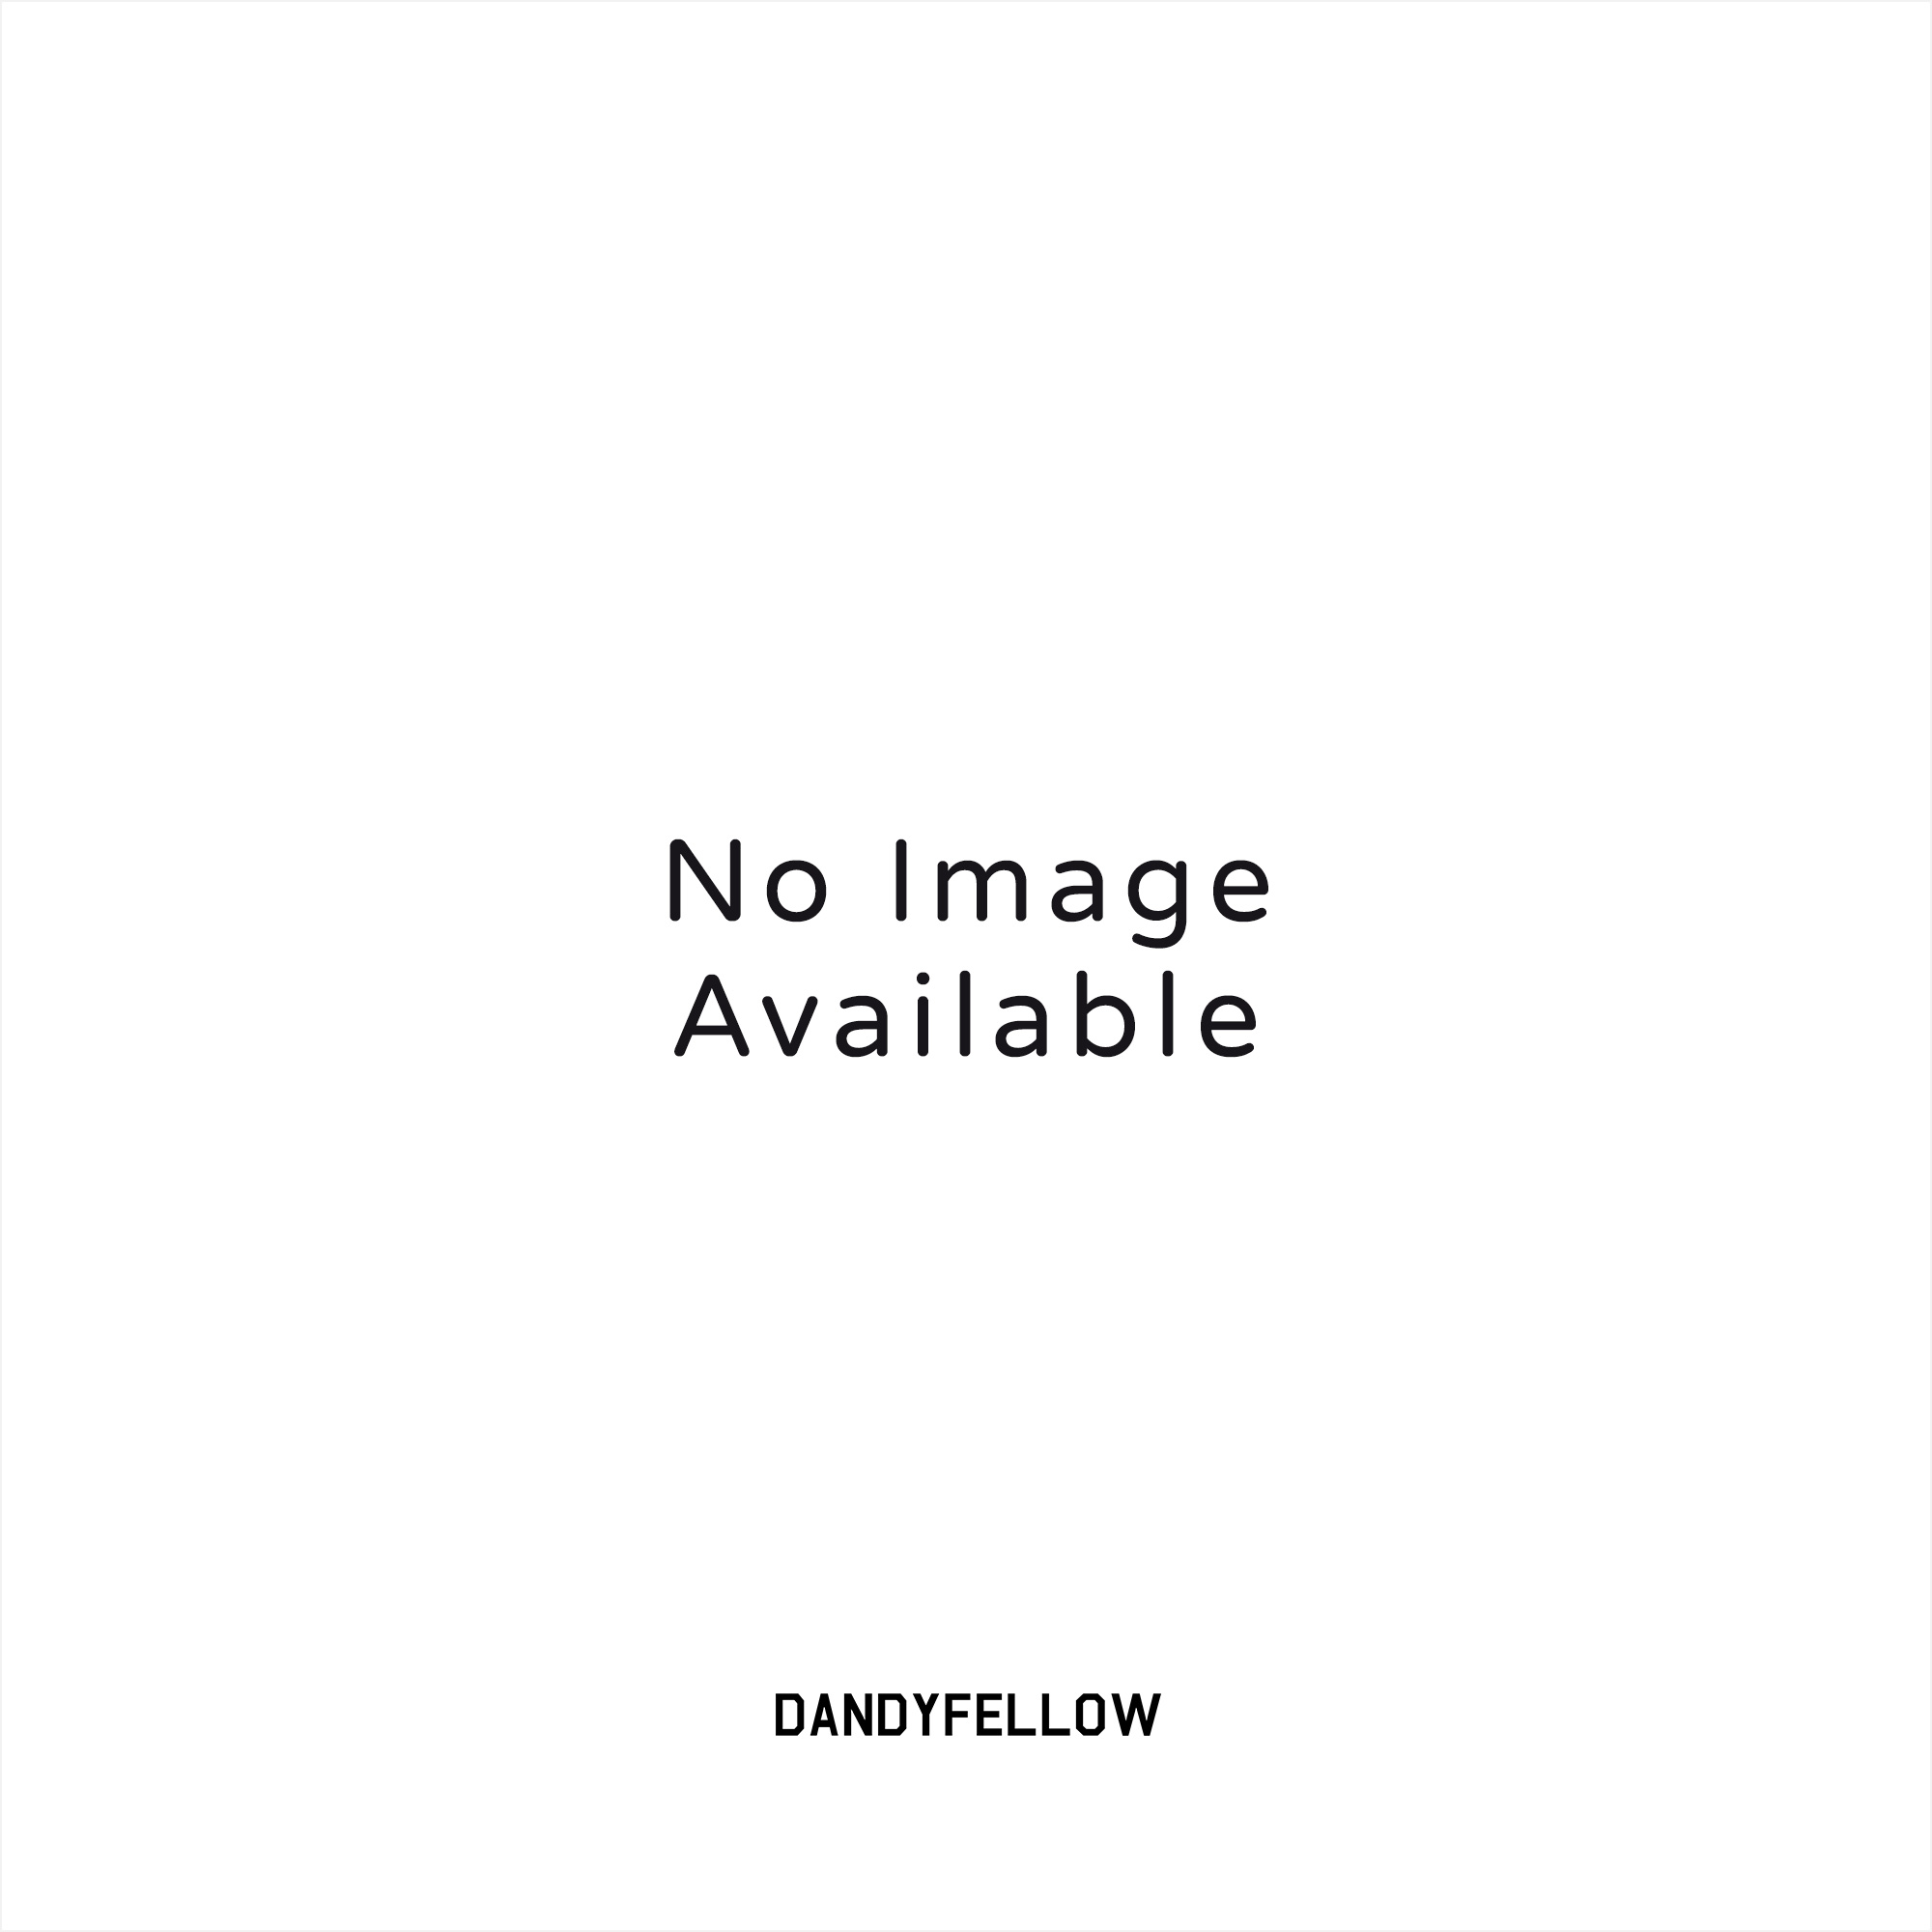 Edwin Jeans Black ED-55 Chino Relaxed Tapered 9oz Compact Twill